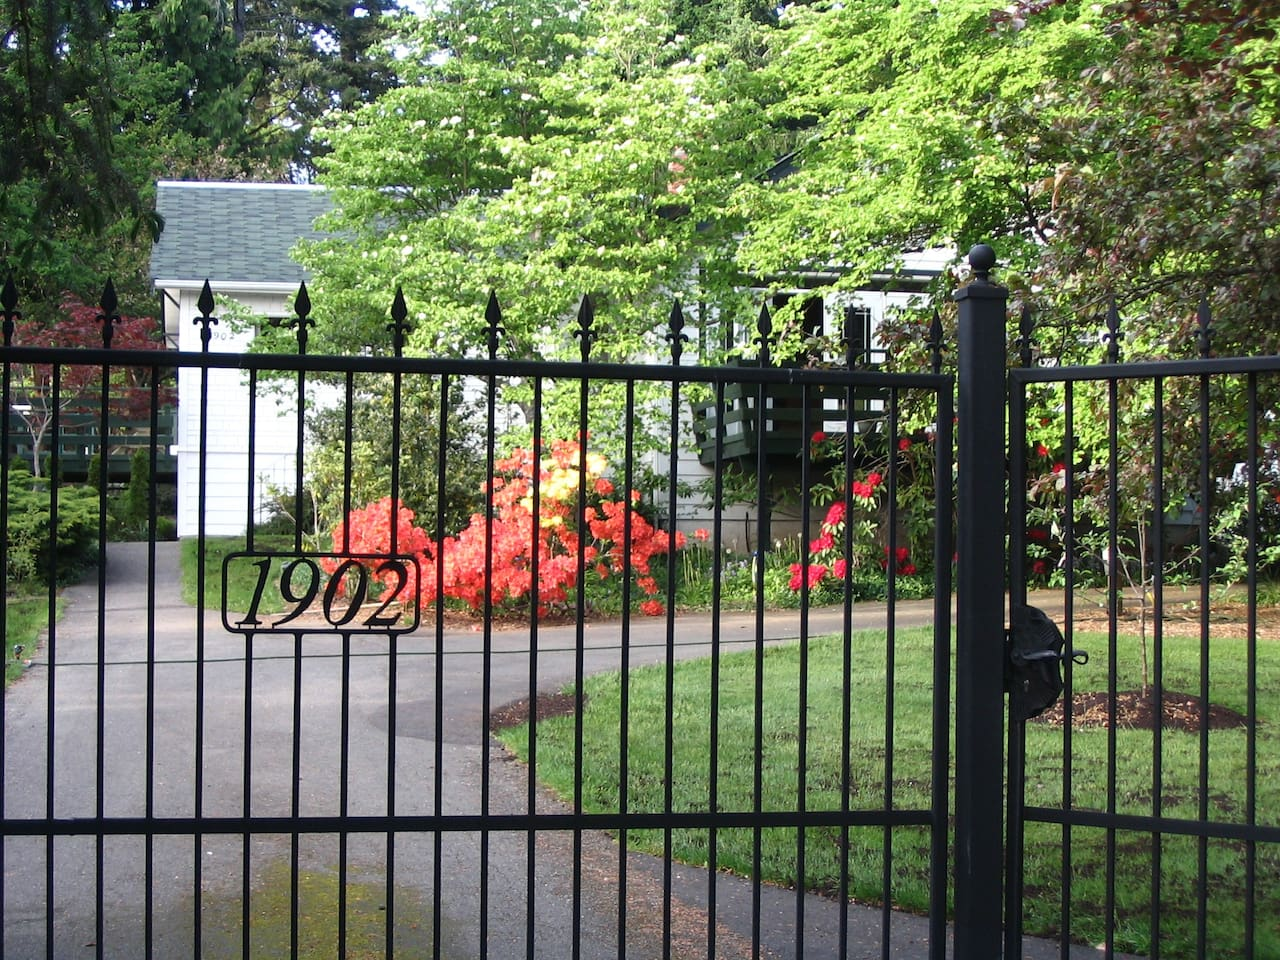 At the click of a button the gate opens to admit you to the estate.